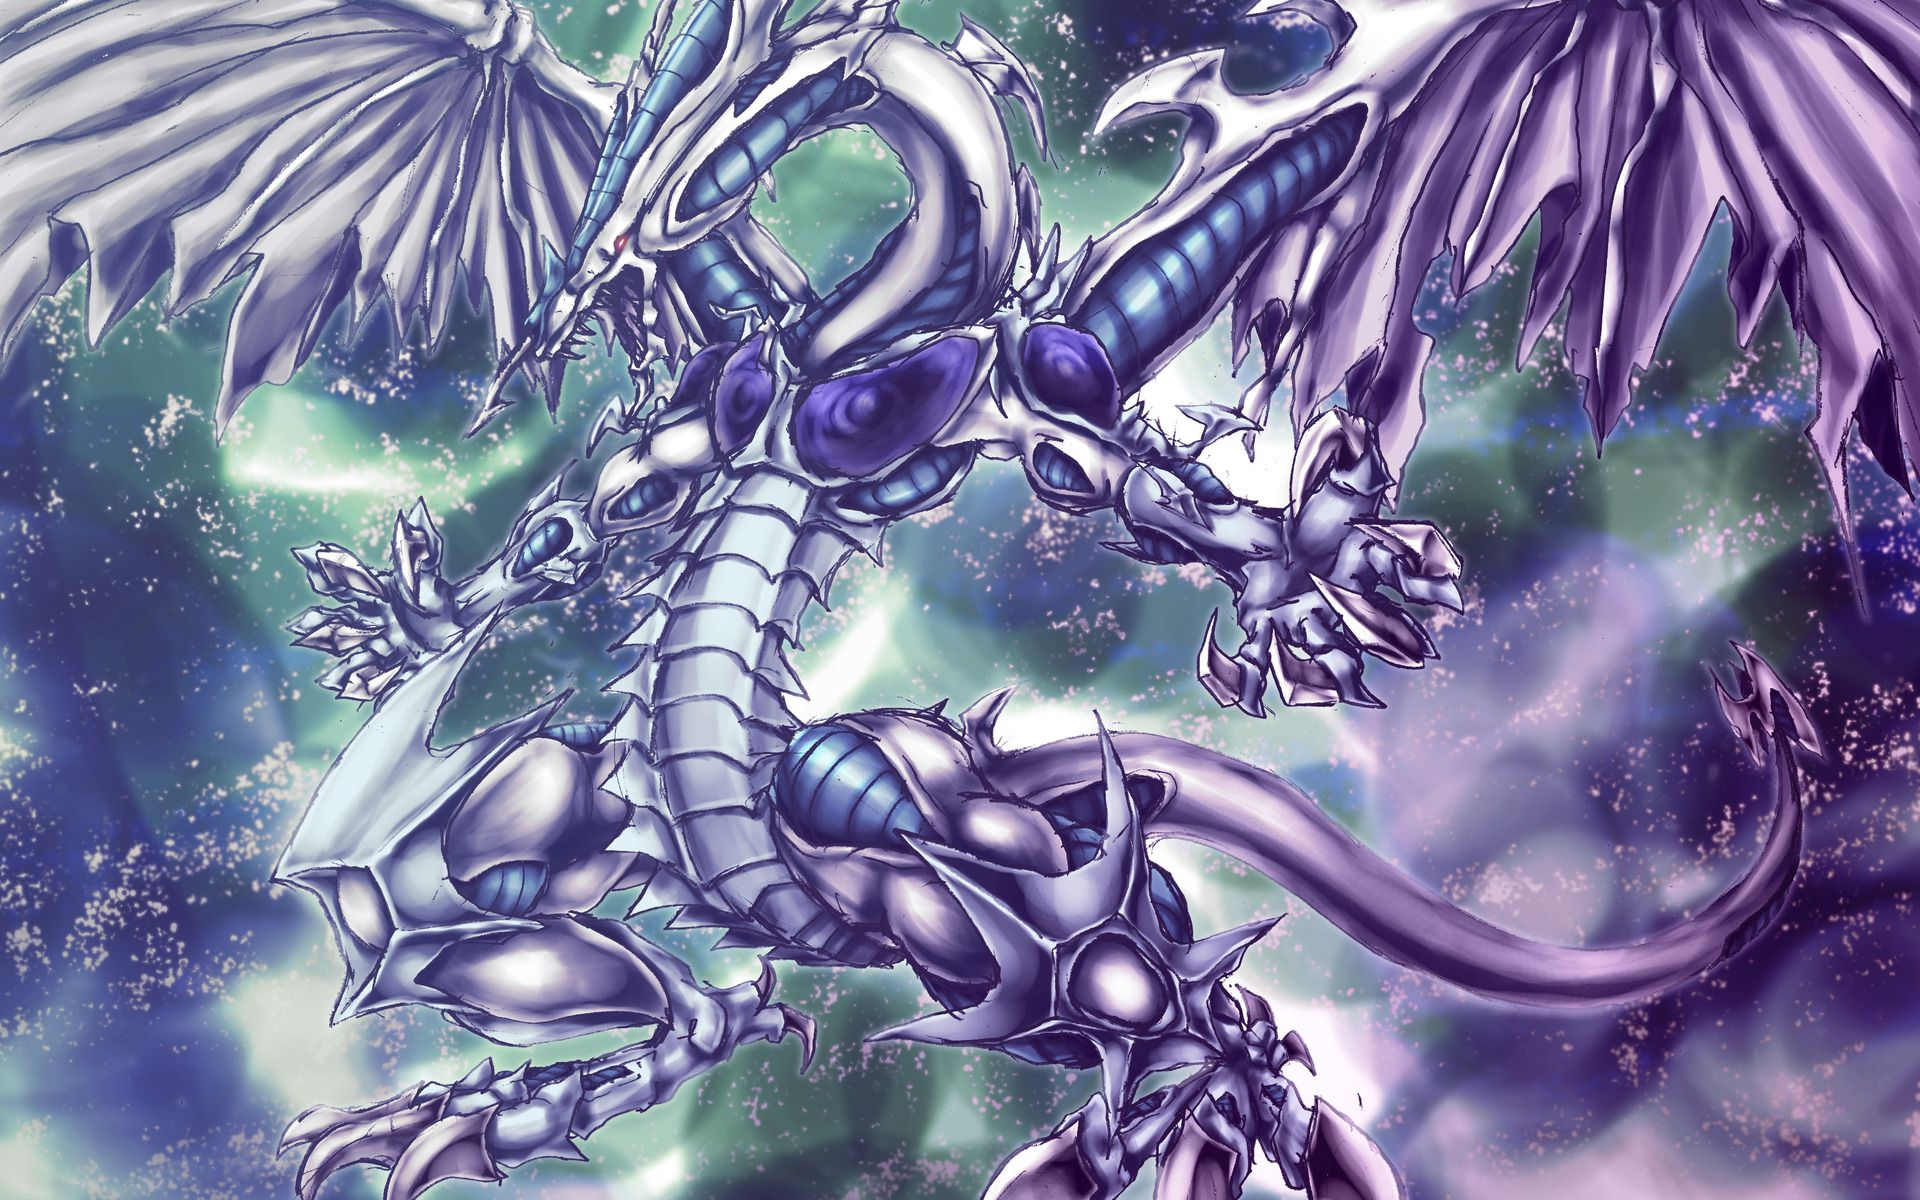 High Resolution Best Anime Yu Gi Oh Yugioh Wallpaper Hd 17